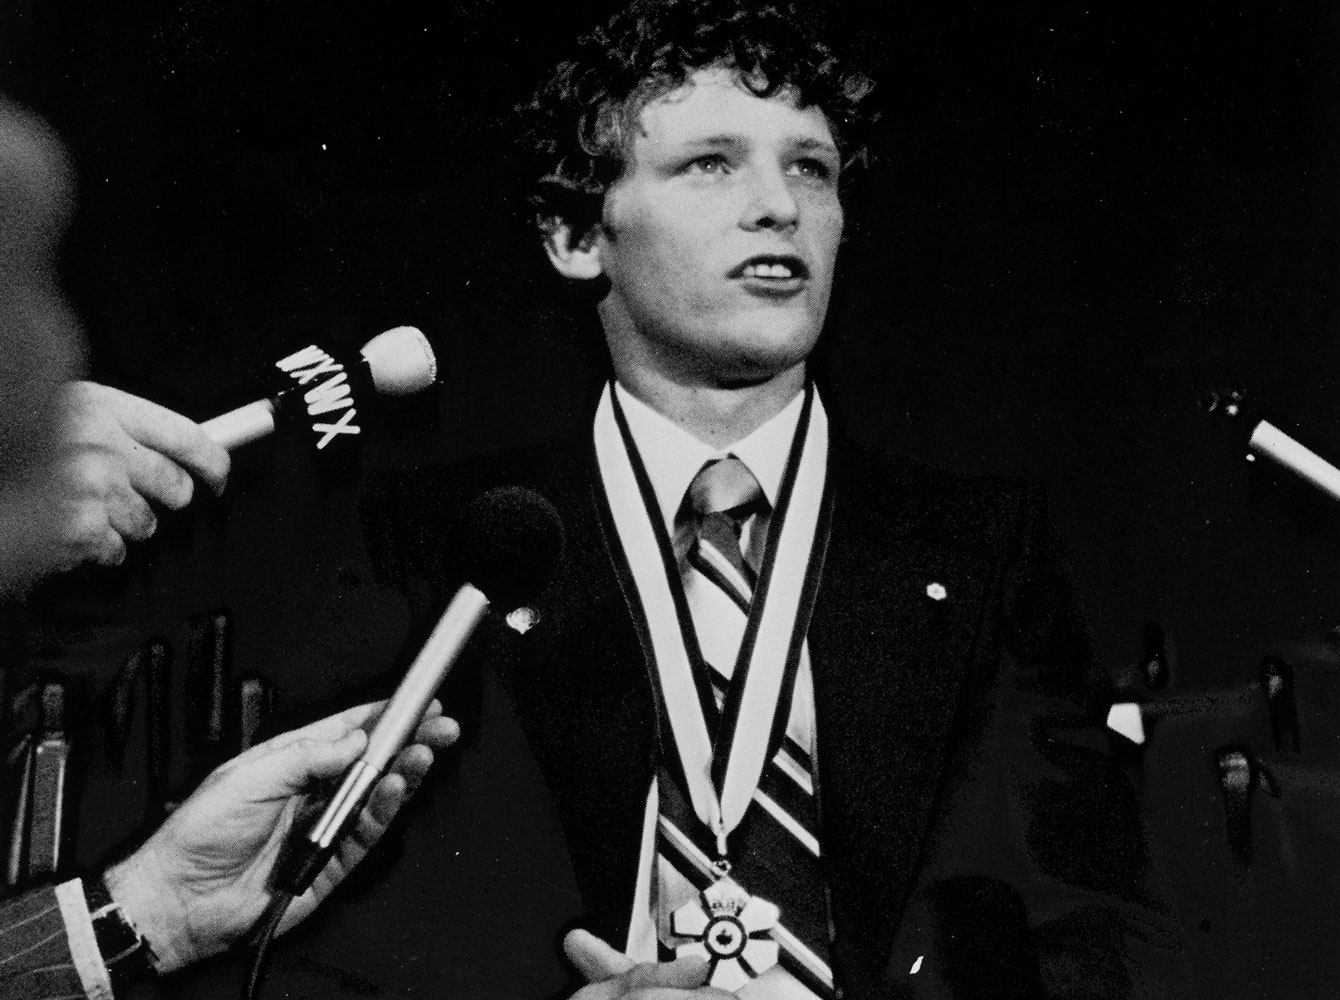 Terry Fox received the Order of Canada in September 1980, shortly after he had to abandon his Marathon of Hope.